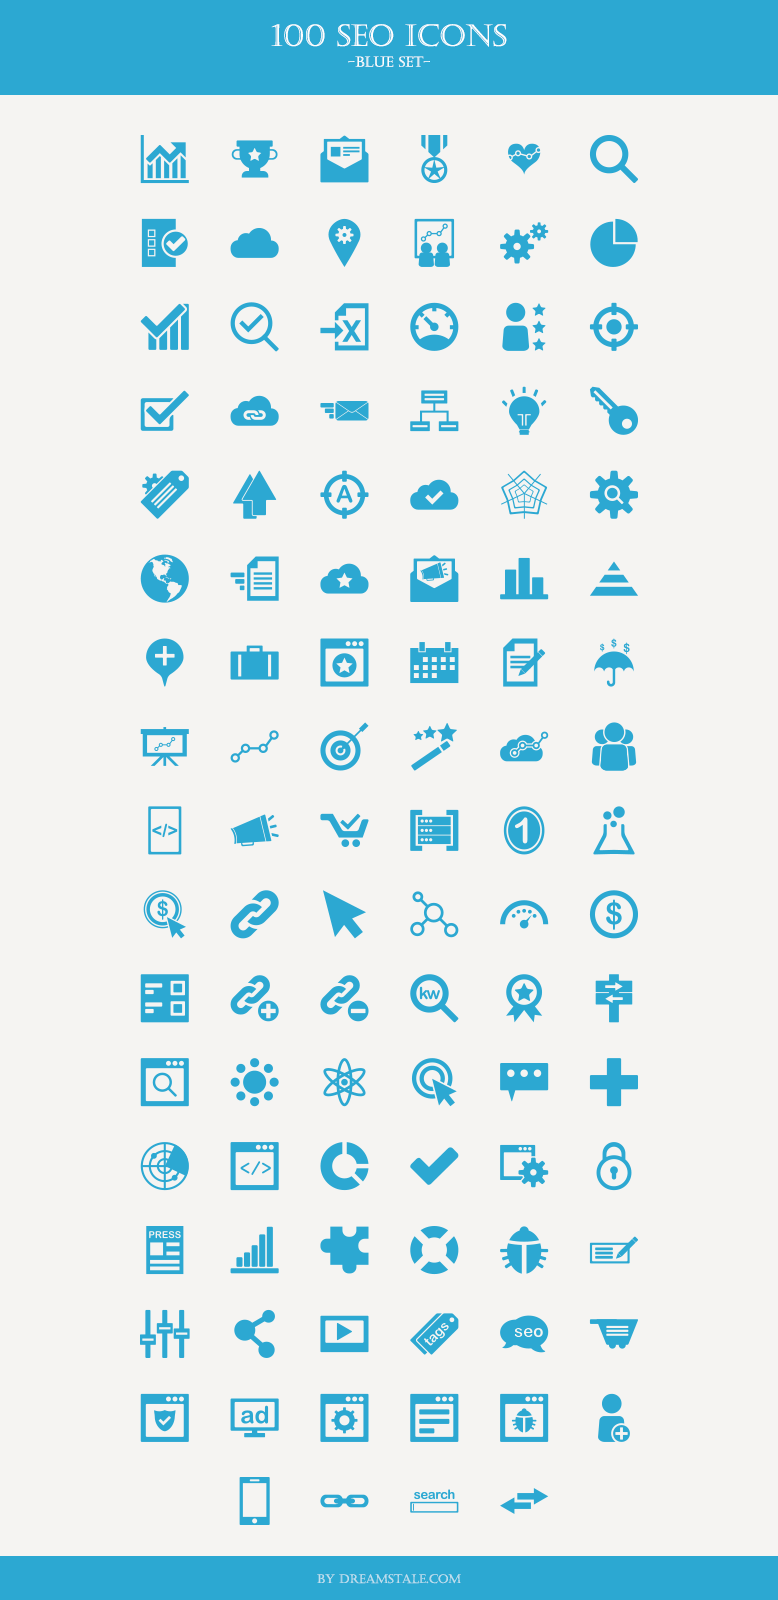 100-seo-vector-icons-premium-set-large-preview-2